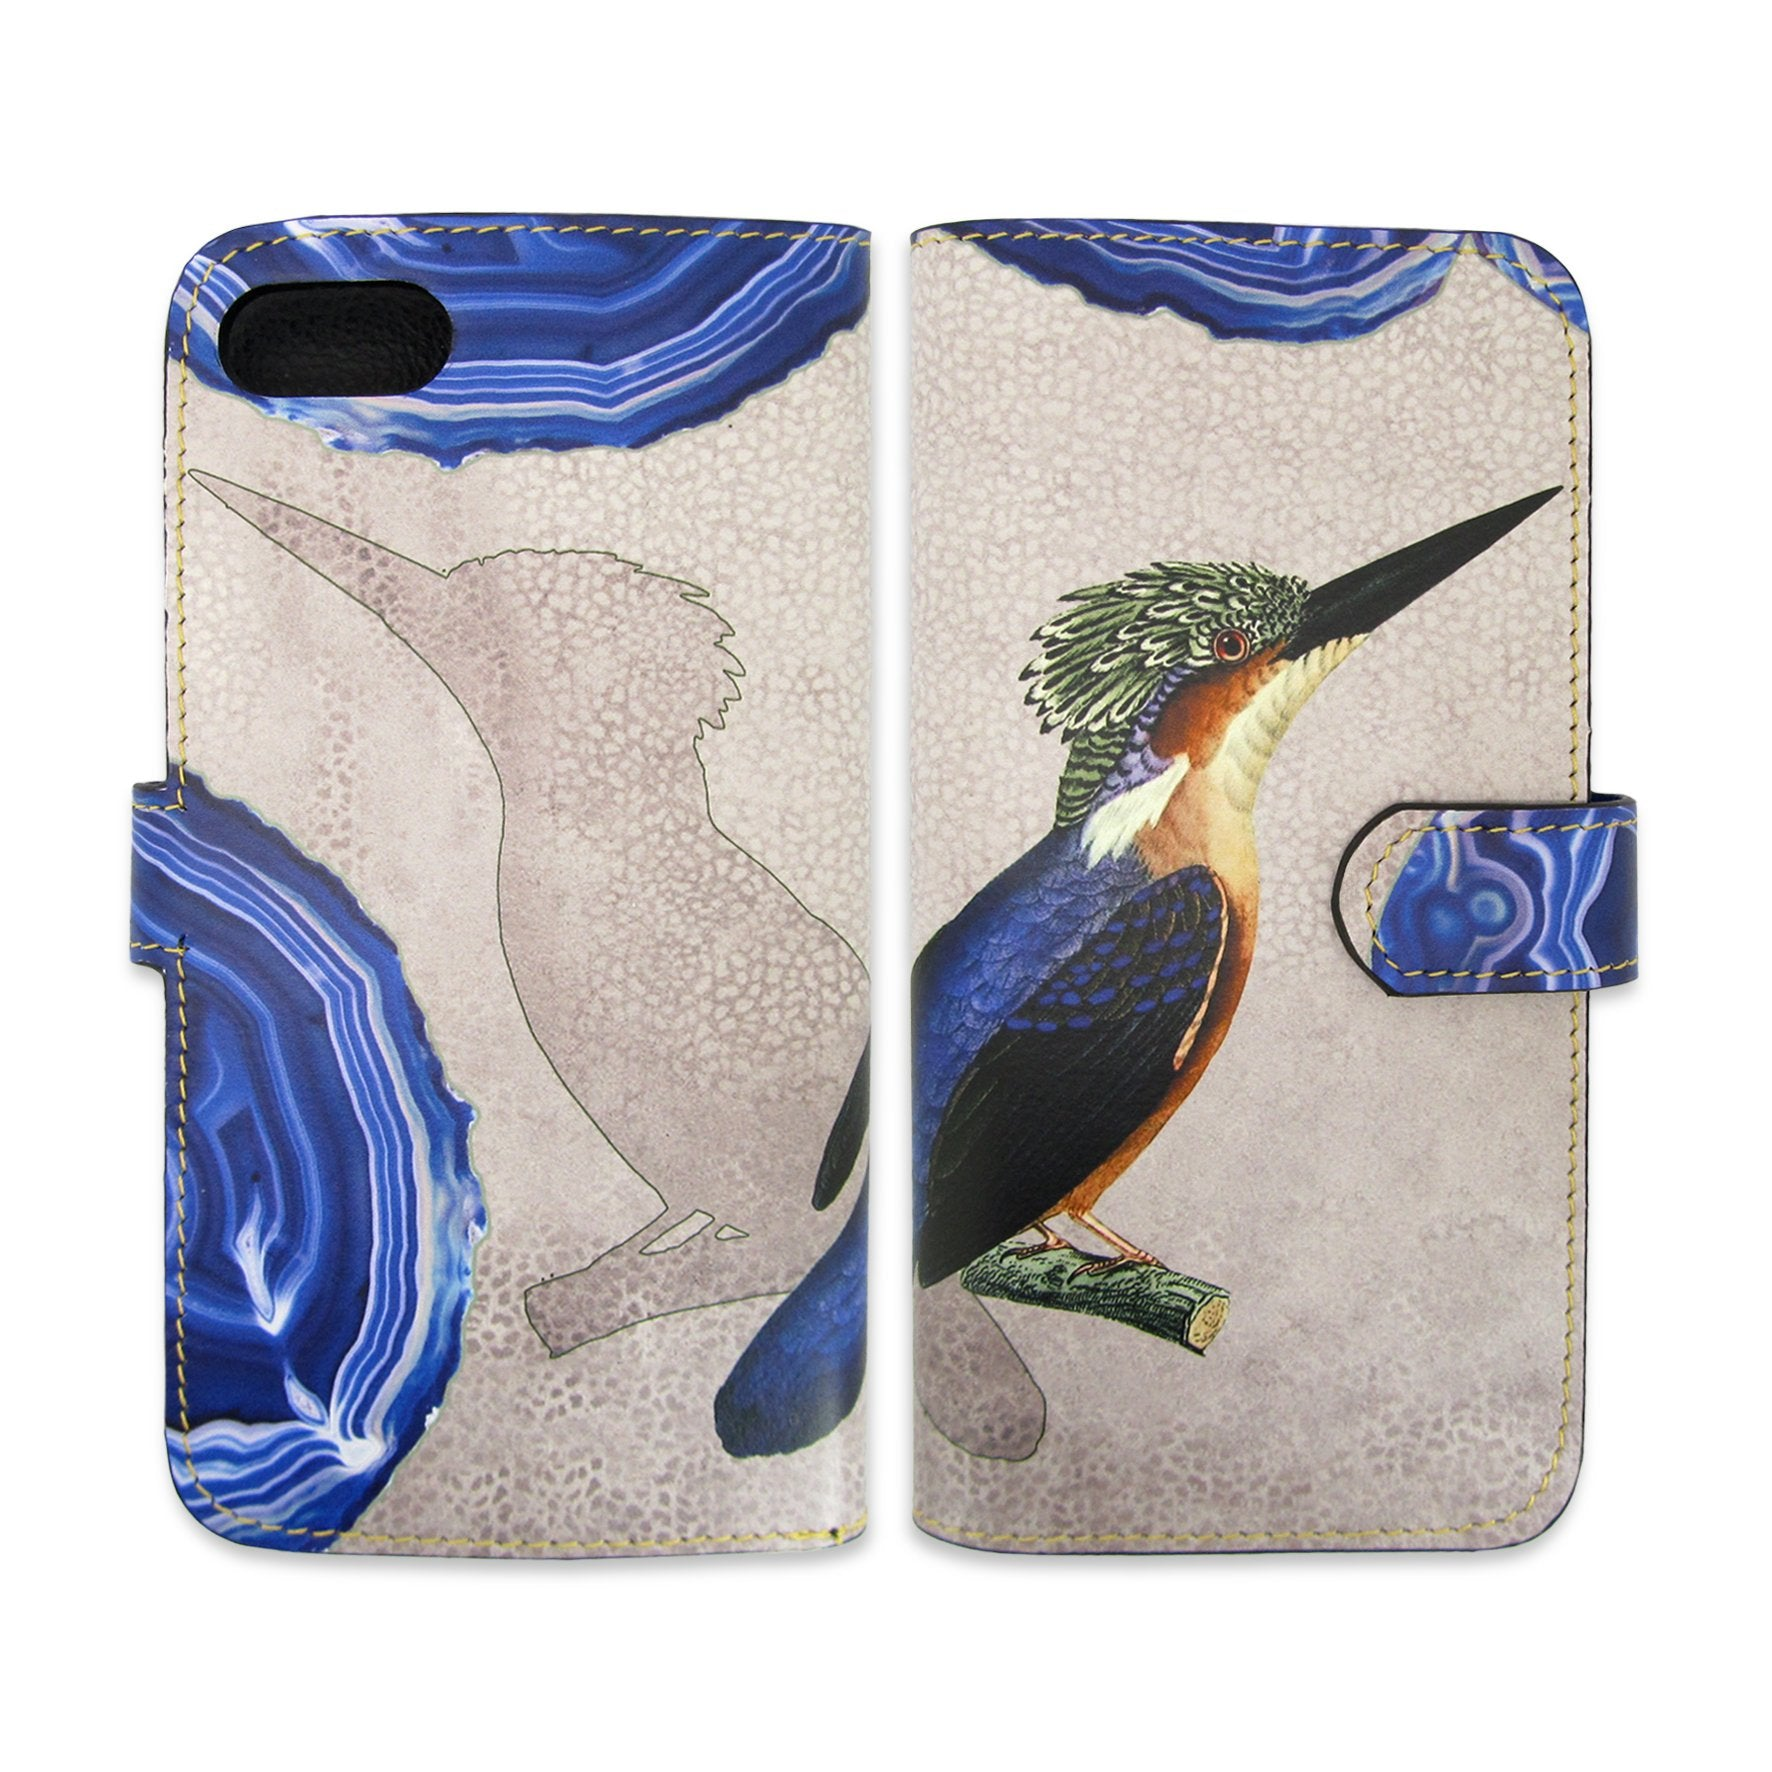 Phone wallets - Kingfisher Phone case - Blue bird phone case - Crystal print phone case – Blue and grey phone case -